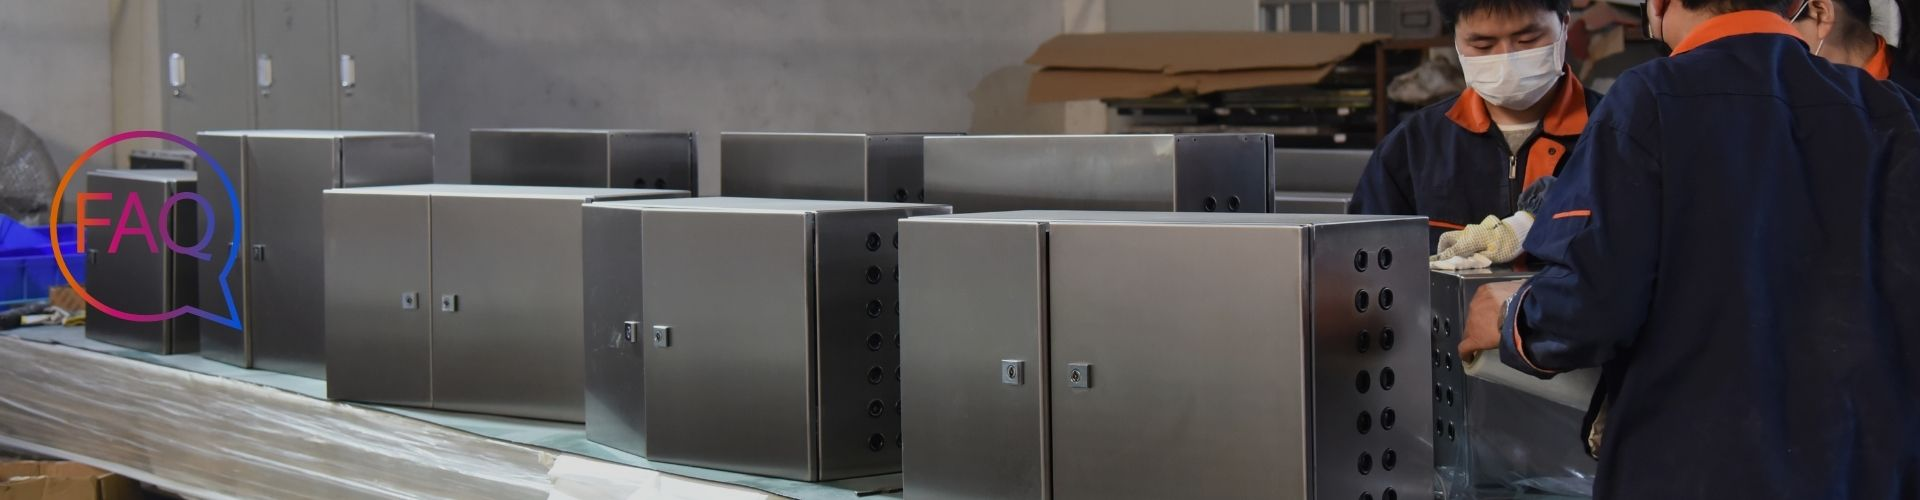 Frequently Asked Questions about KDM electrical enclosure